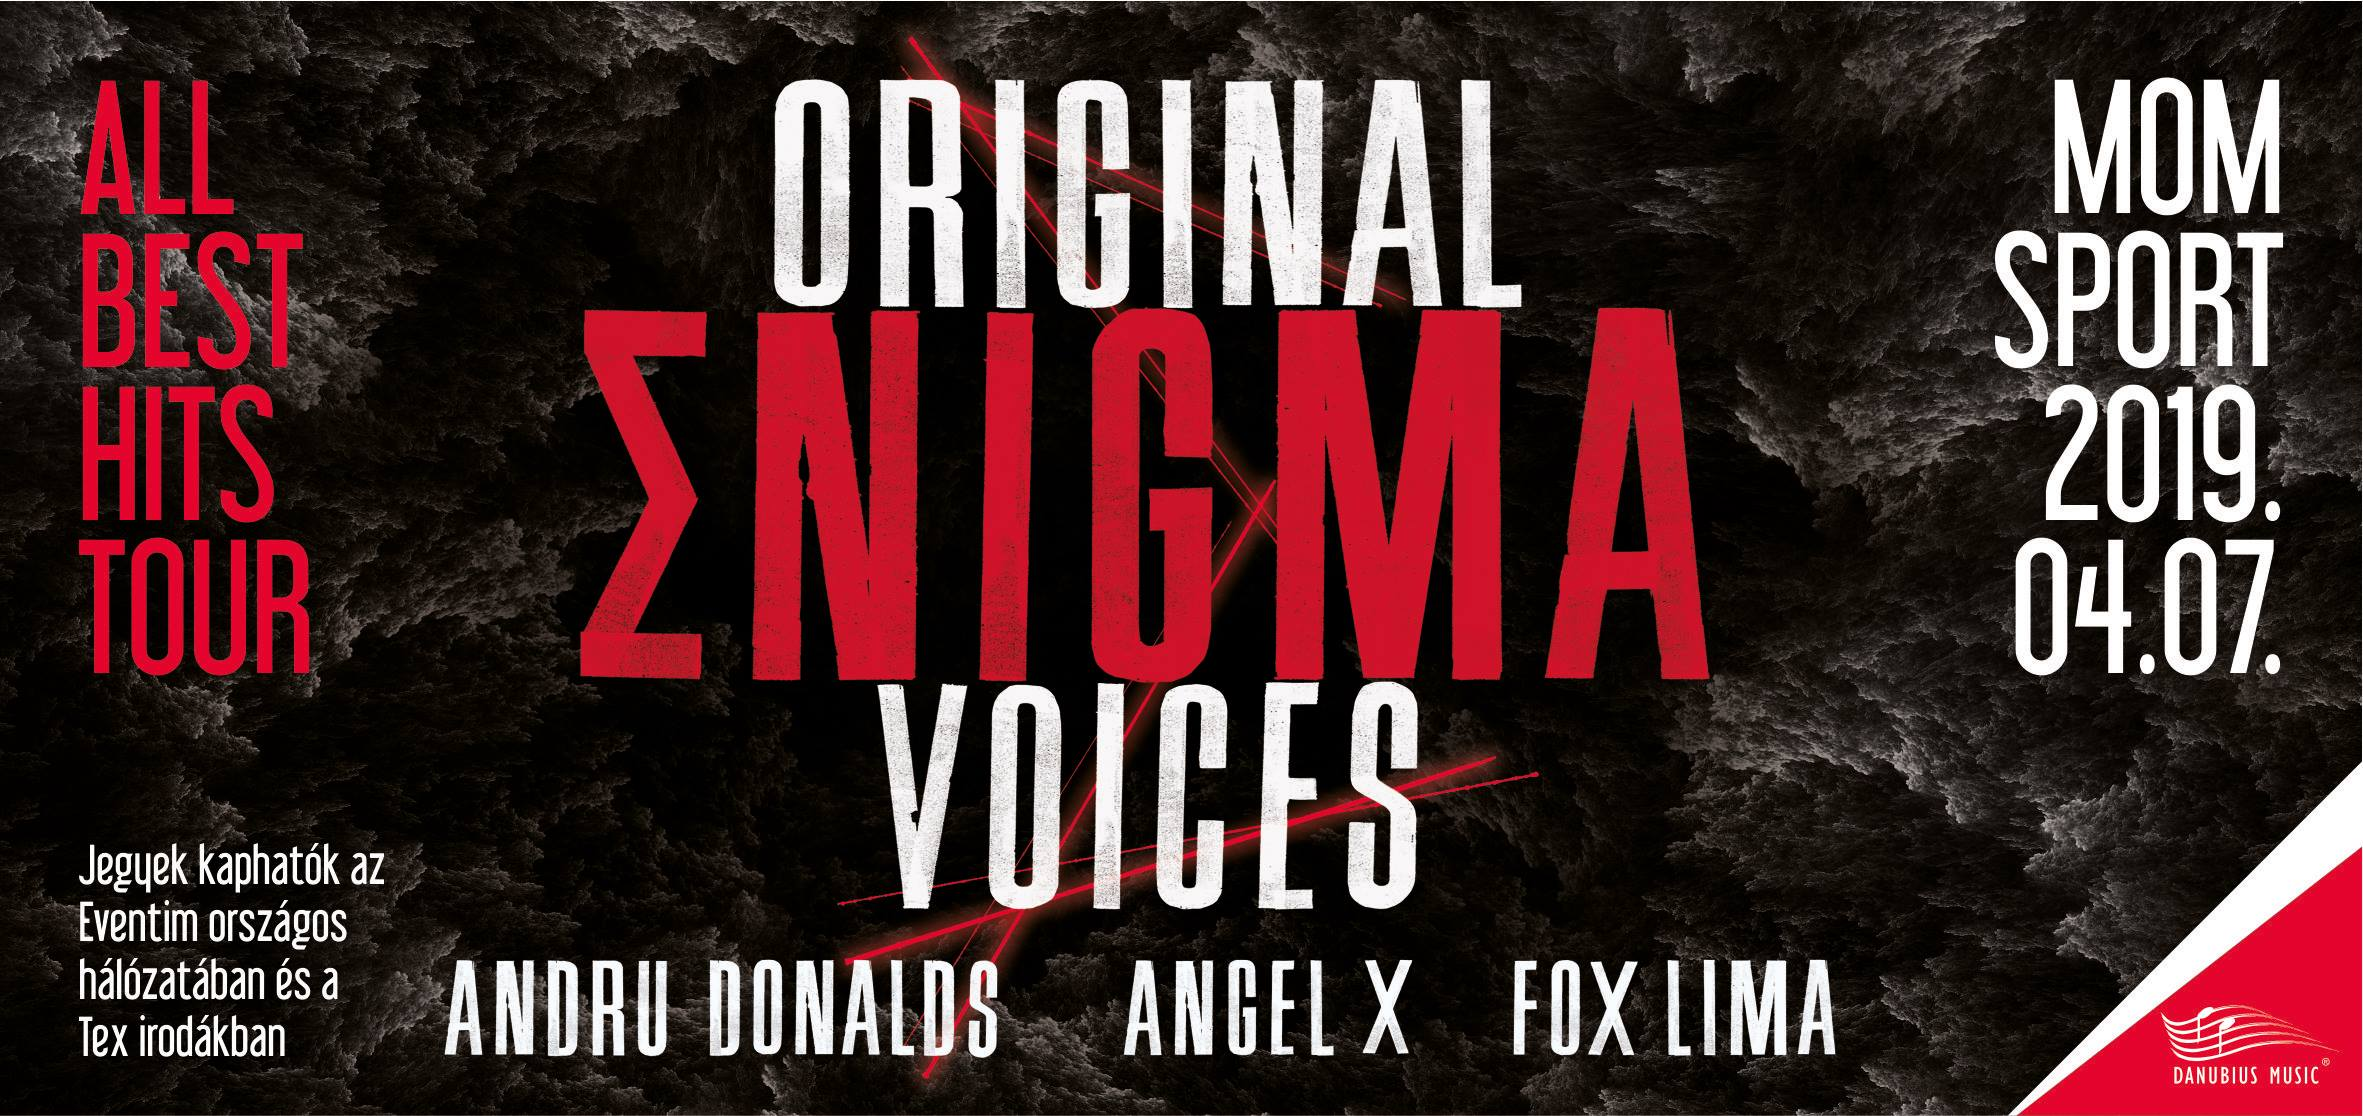 Original Enigma Voices To Come To Budapest This April